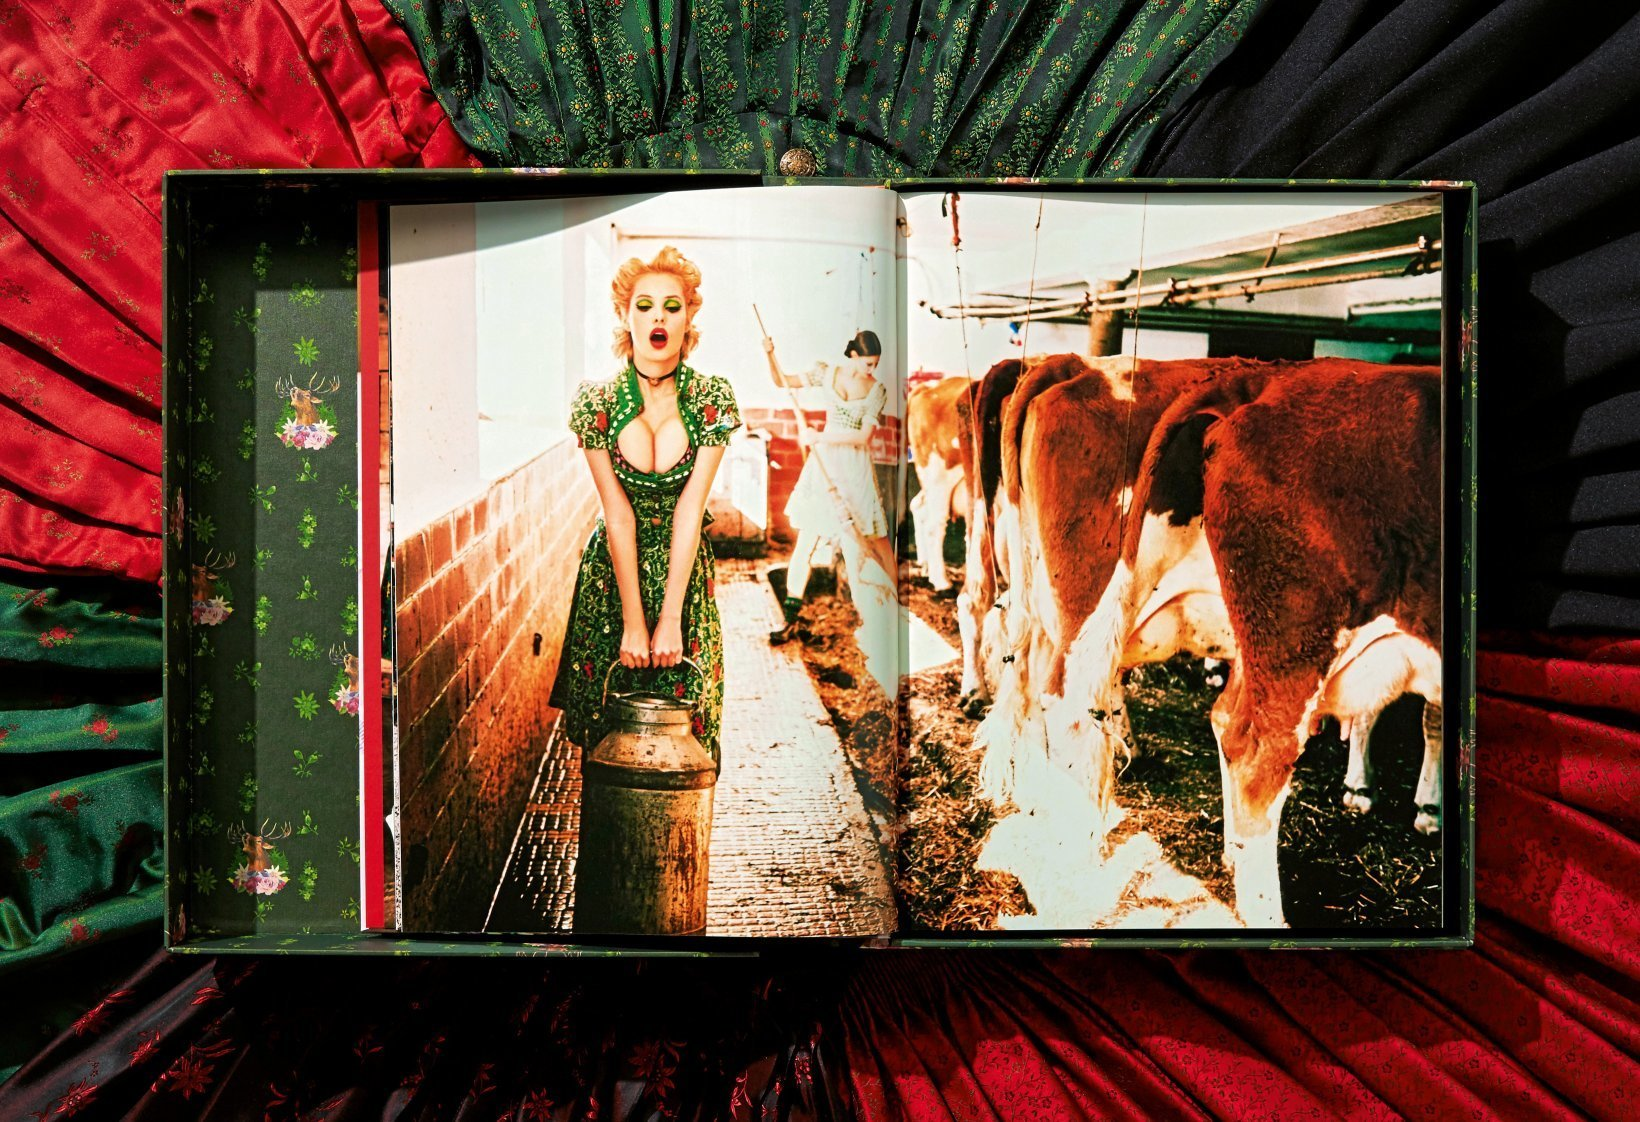 Image of Ellen von Unwerh: Heimat, published by Taschen and available at www.taschen.com